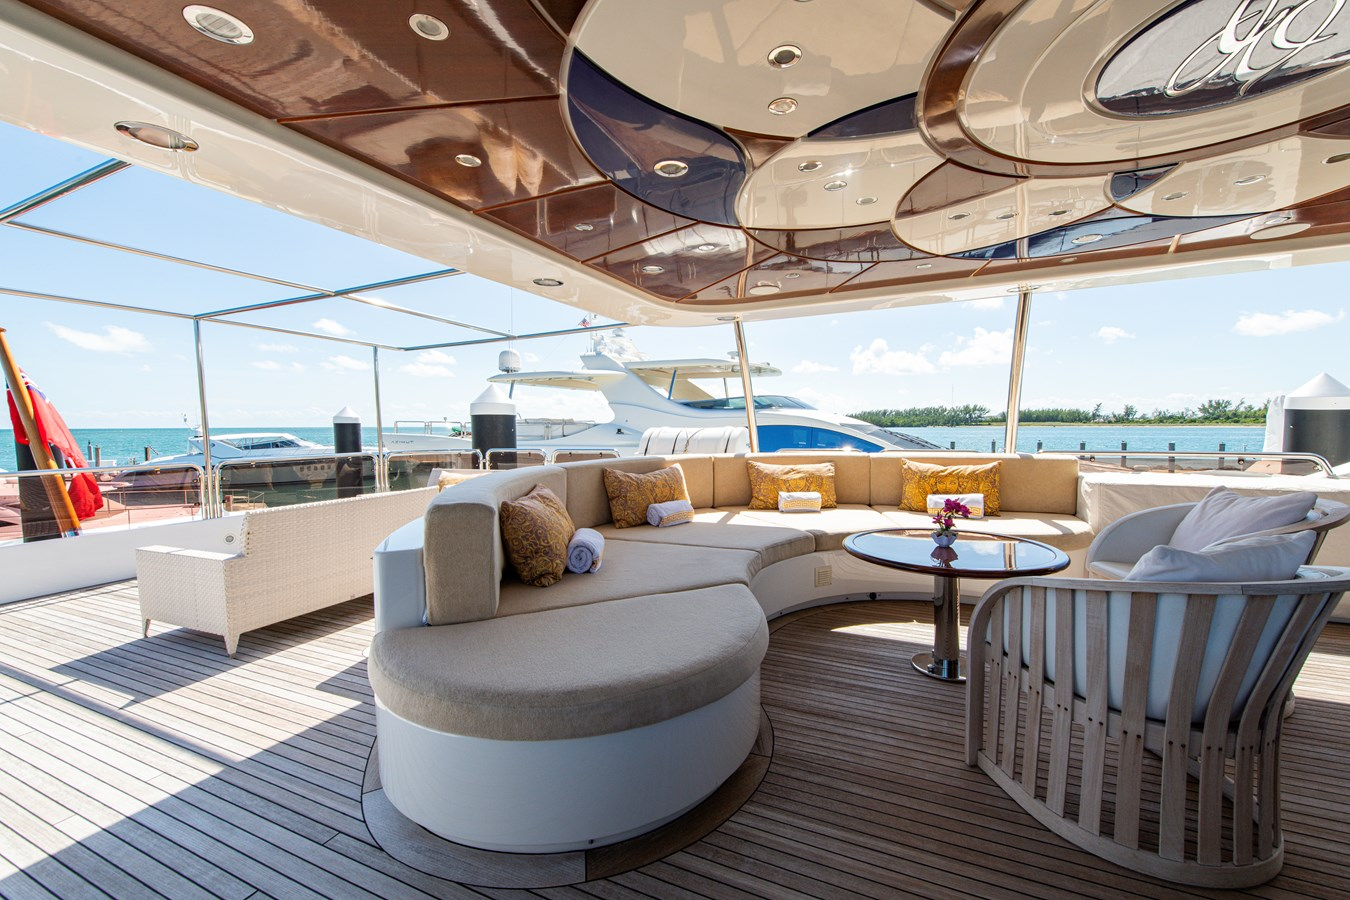 Pilot House Aft Deck 2006 BENETTI Tradition Series Motor Yacht 2738500